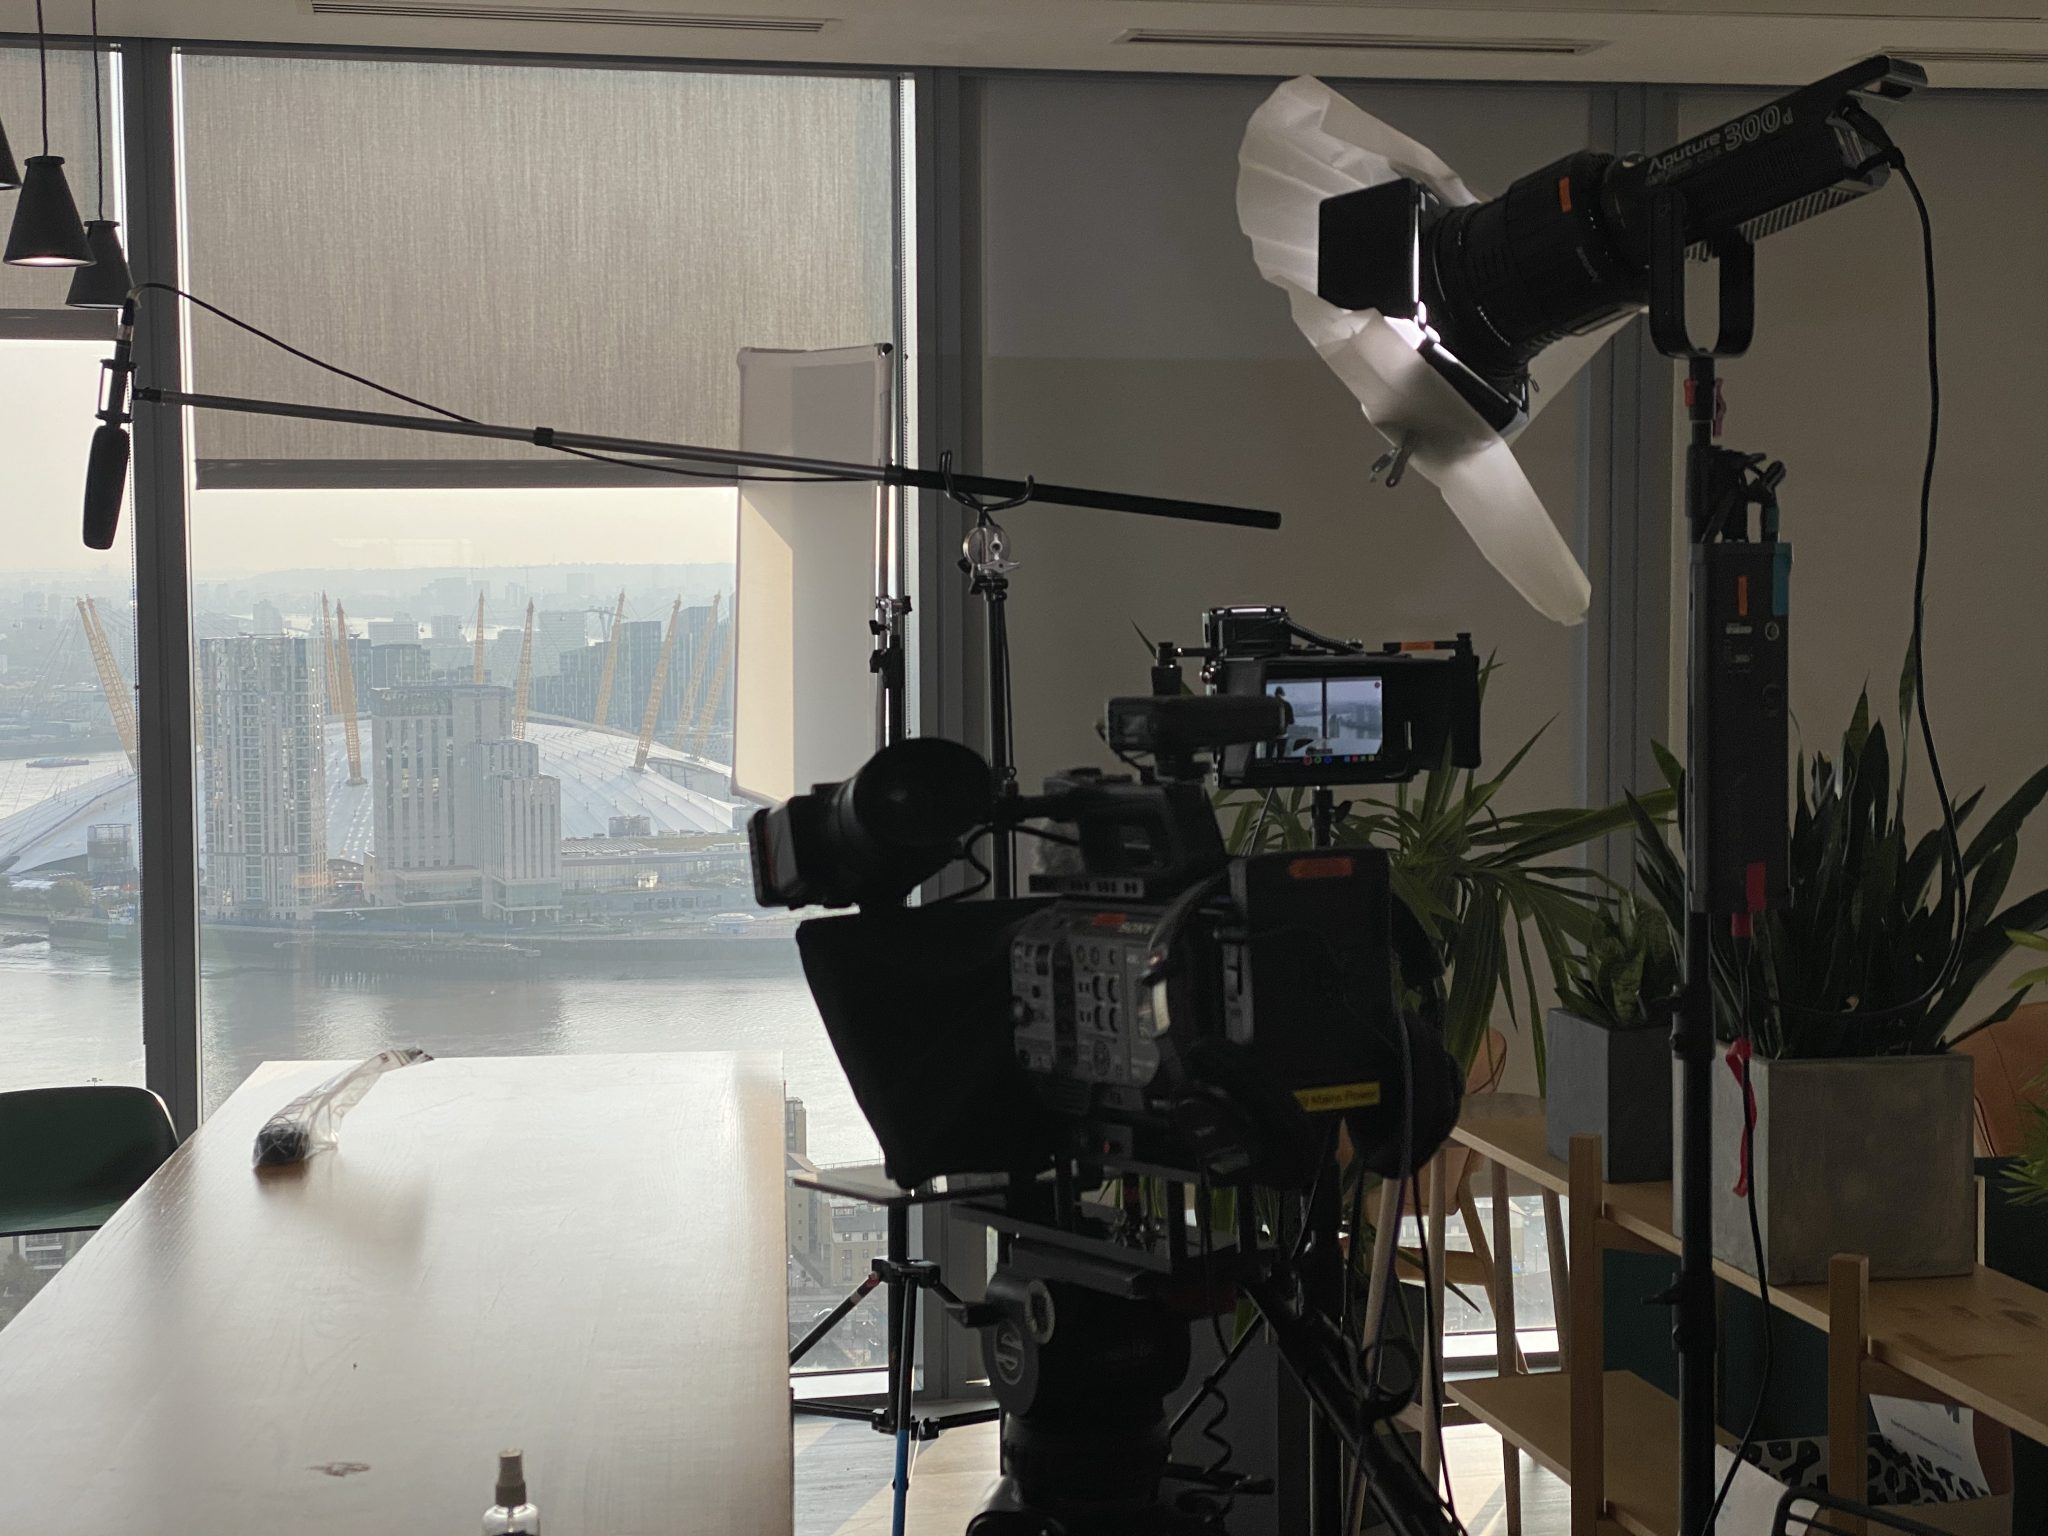 Filming a PTC overlooking the O2 arena in London